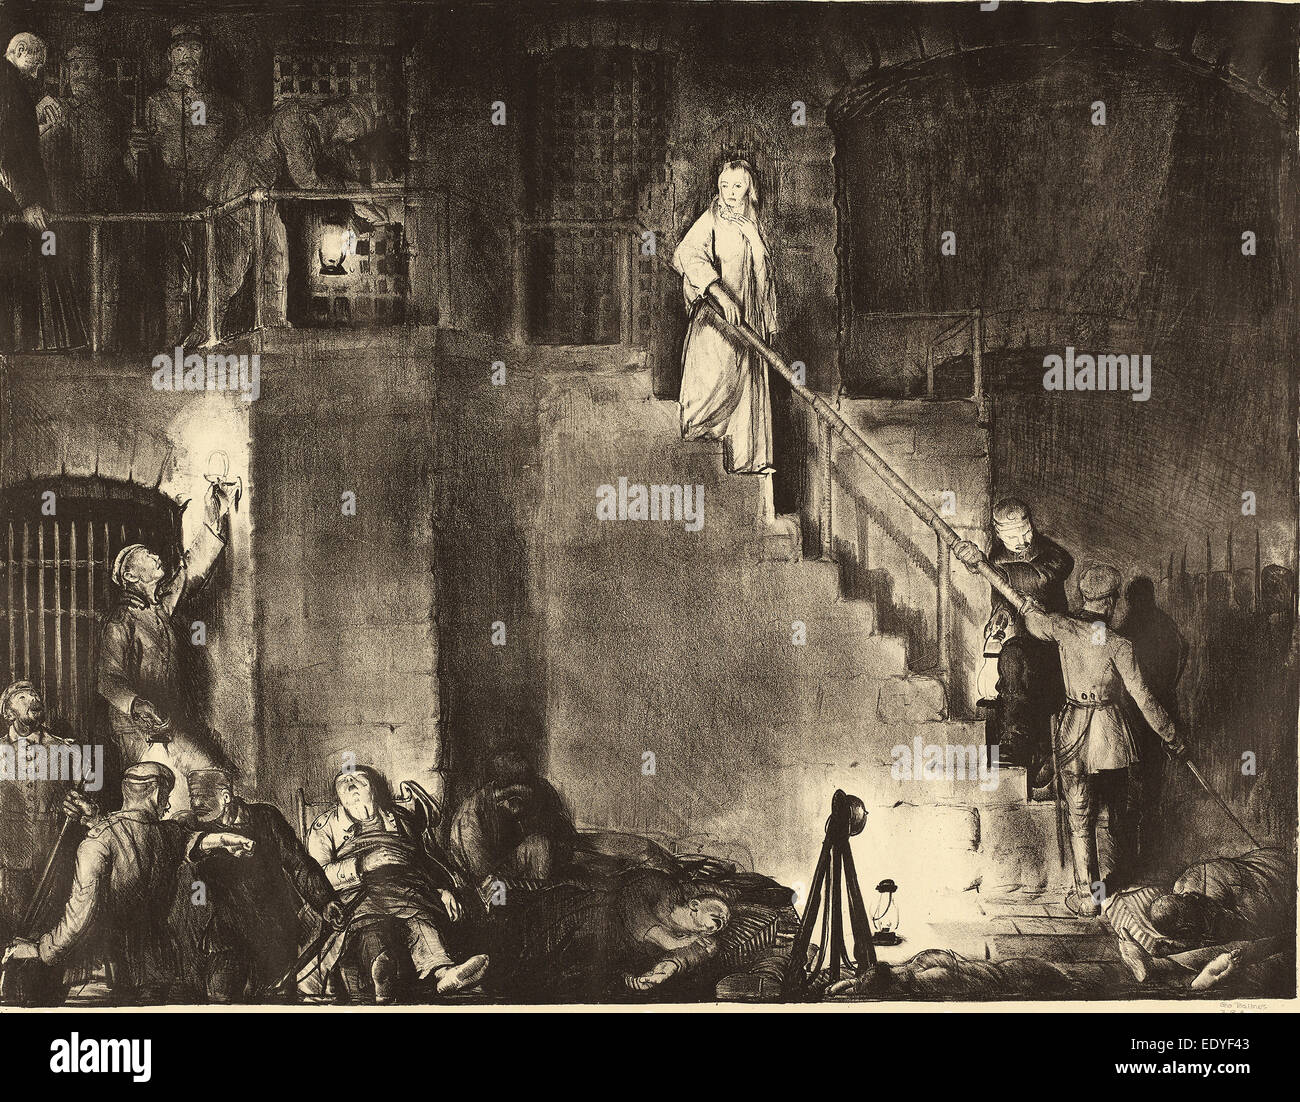 George Bellows, Murder of Edith Cavell, American, 1882 - 1925, 1918, lithograph - Stock Image